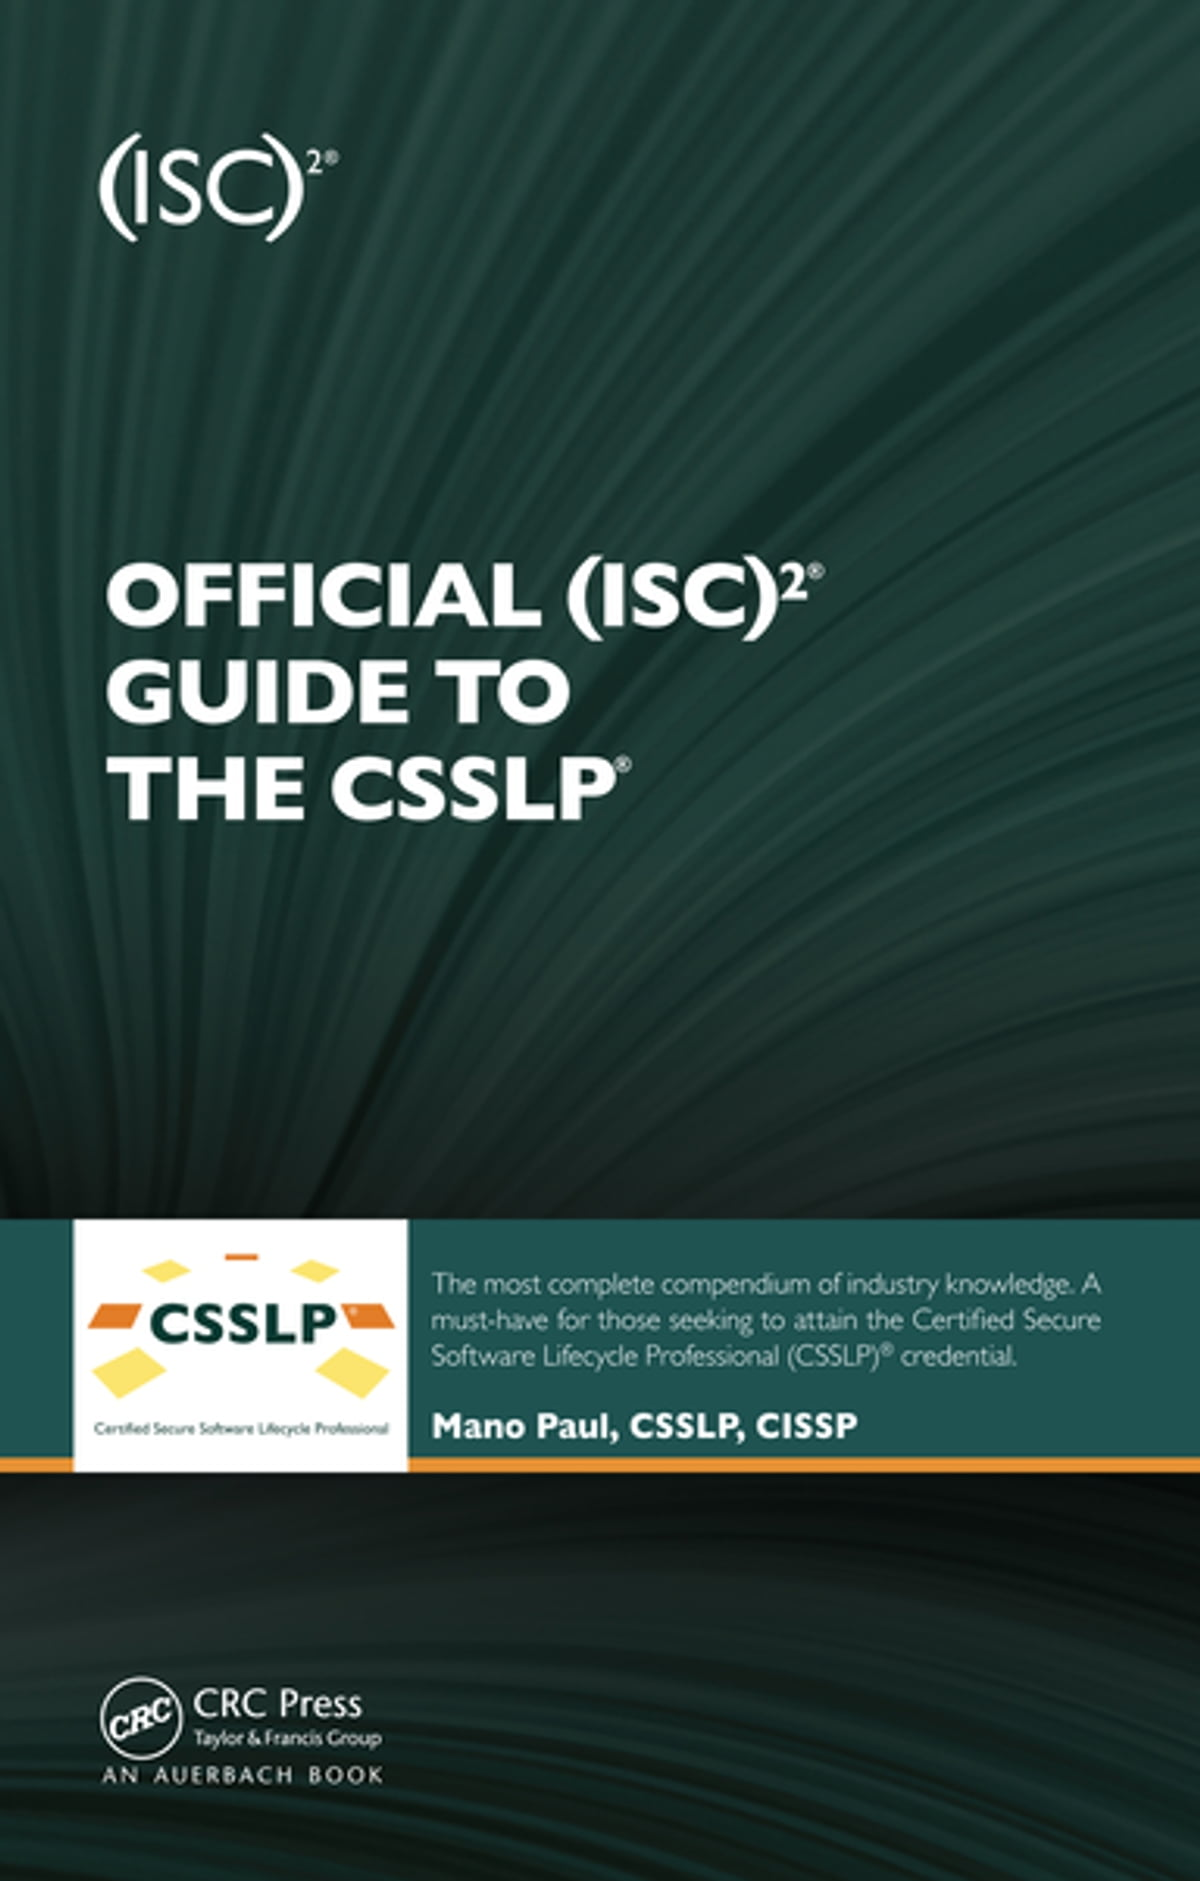 Official Isc2 Guide To The Csslp Ebook By Mano Paul